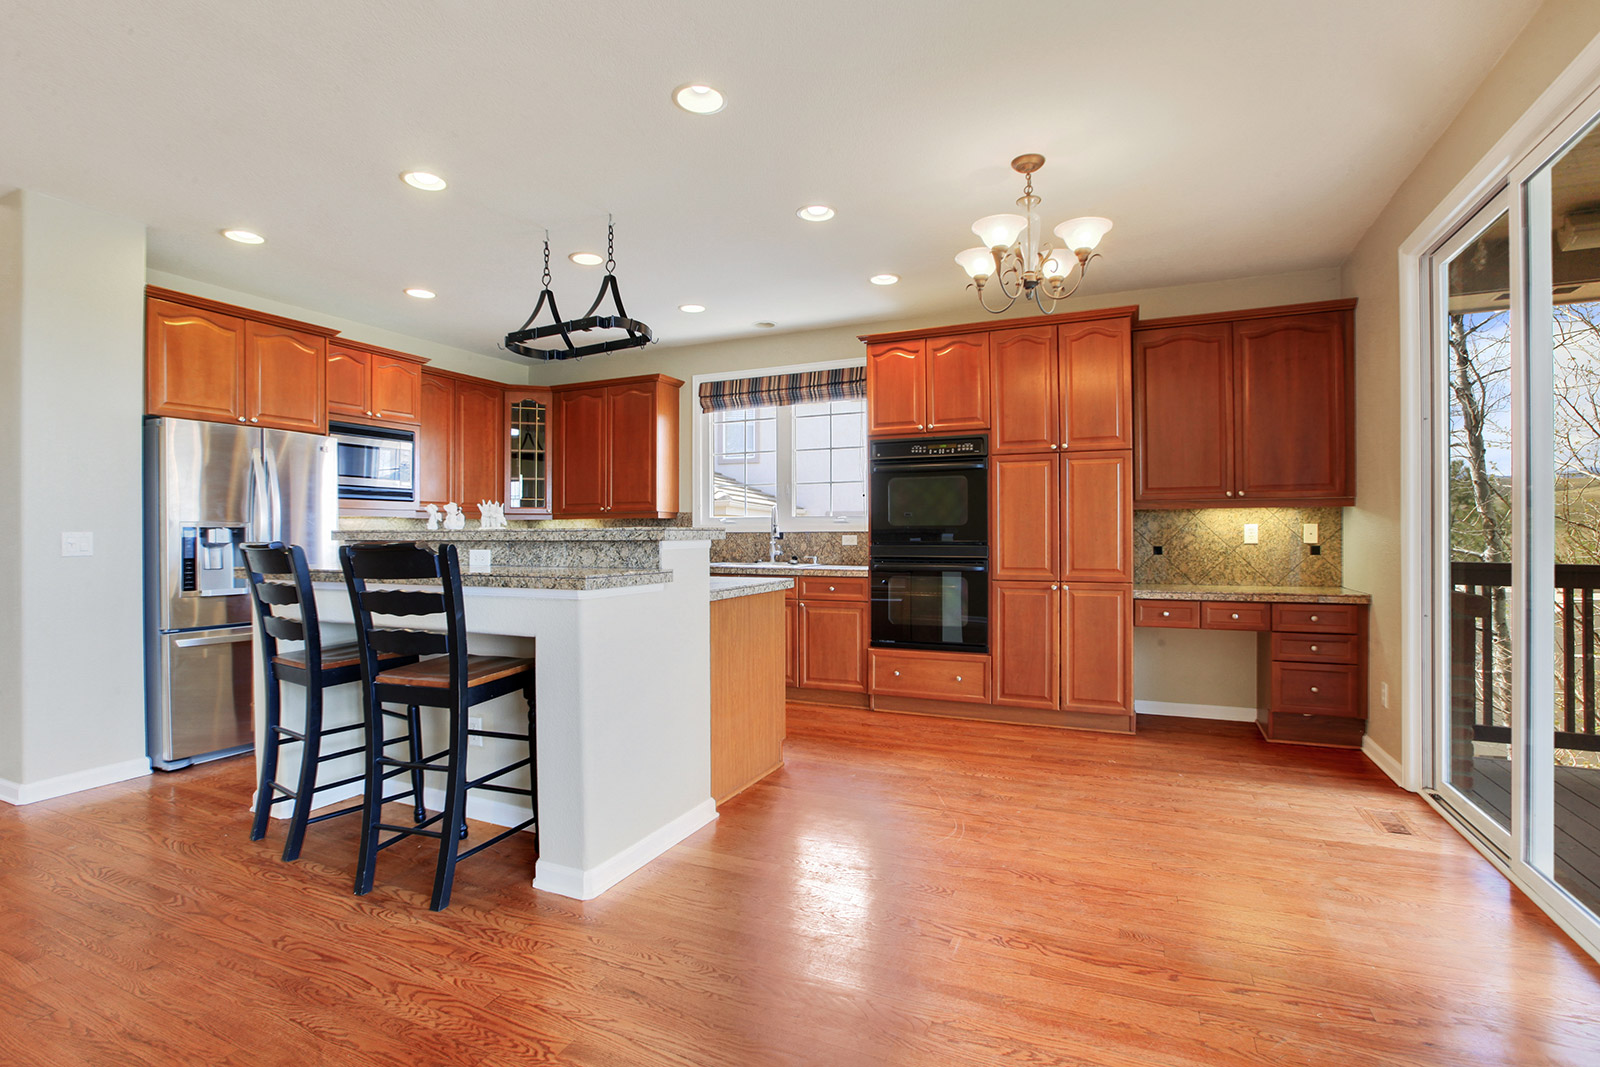 View of new, bright, modern kitchen with barstools at island